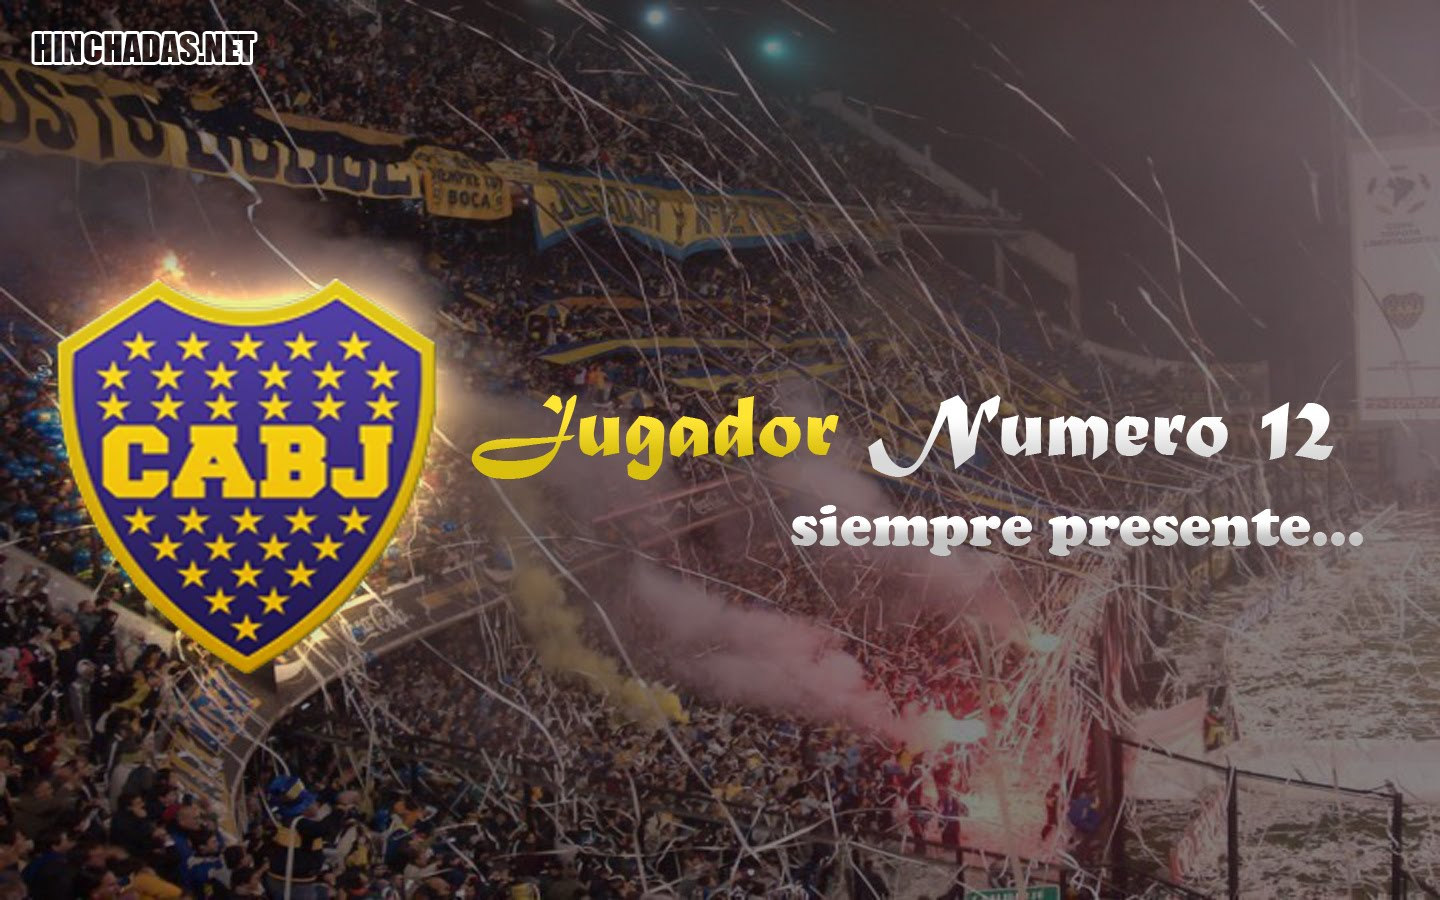 Thompsons Download: DESCARGAR IMAGENES DE BOCA JUNIORS